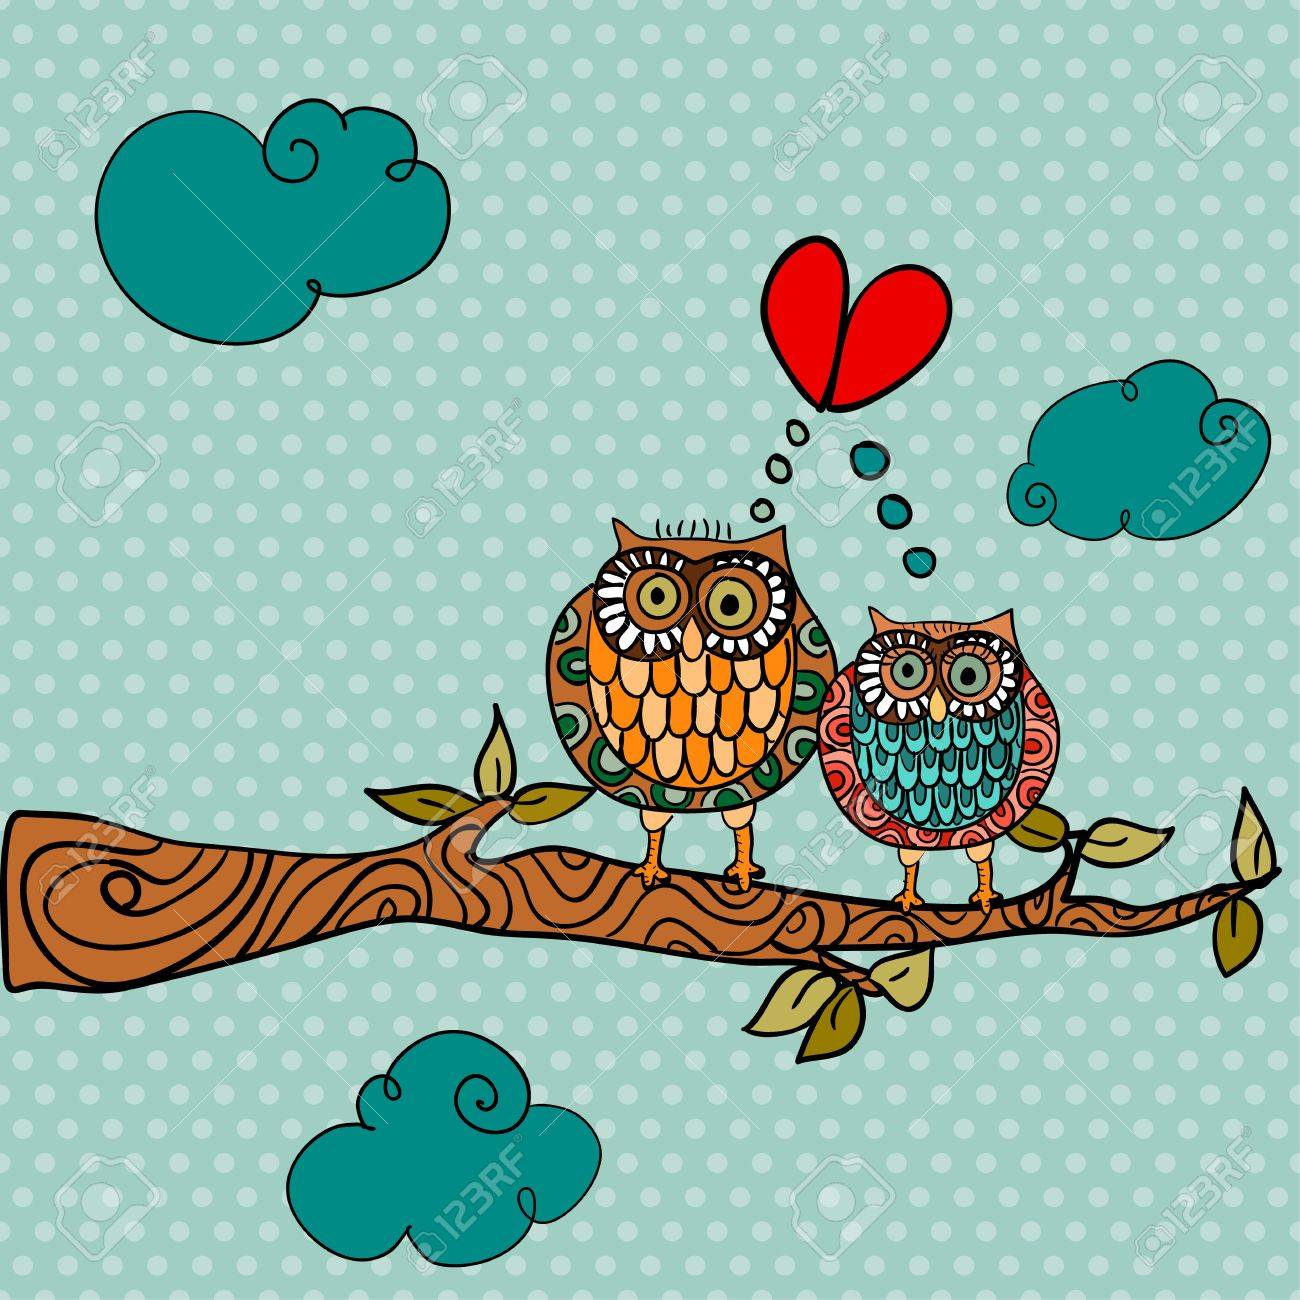 Valentine day owl couple in love greeting card background. Vector illustration layered for easy manipulation and custom coloring. Stock Vector - 17878175